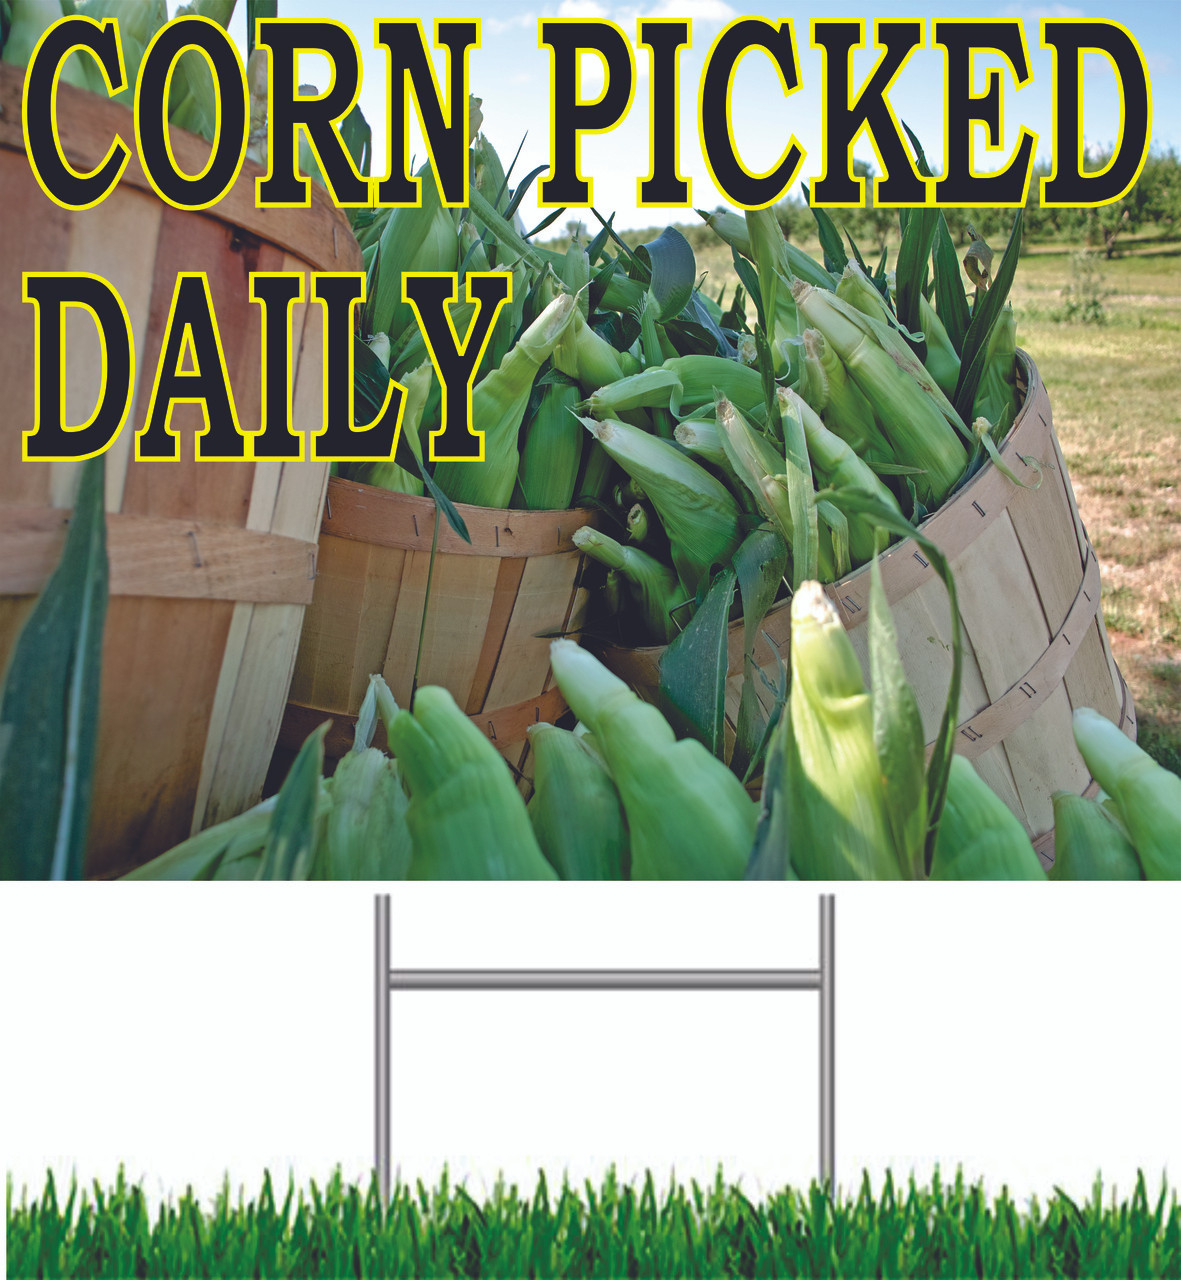 Corn Picked Daily Yard Sign, Corn Lovers Will Take Notice Of This Sign.